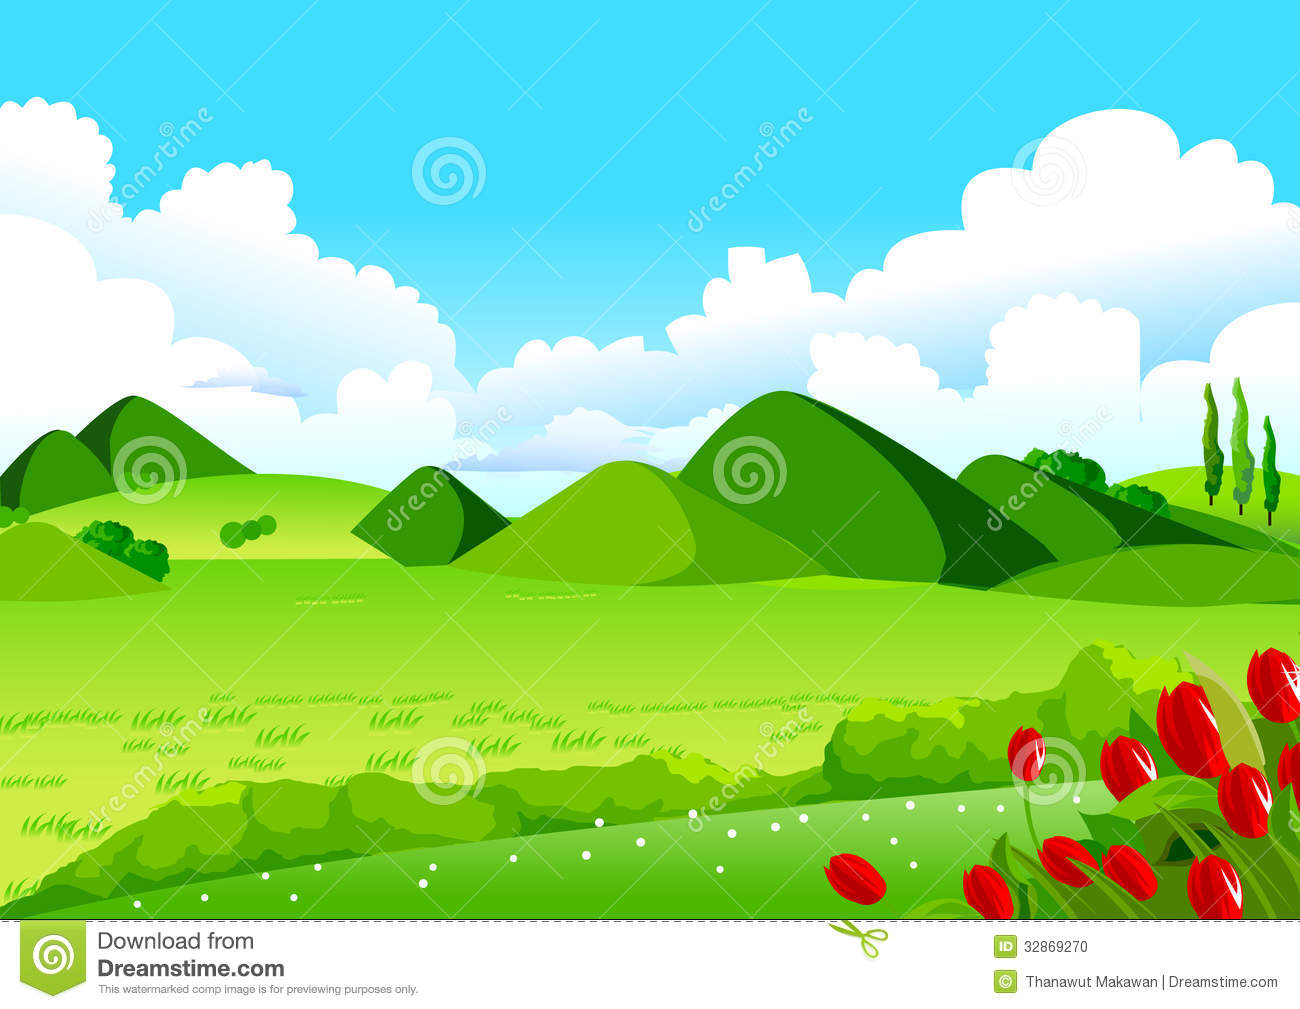 Hills clipart 4 » Clipart Station.